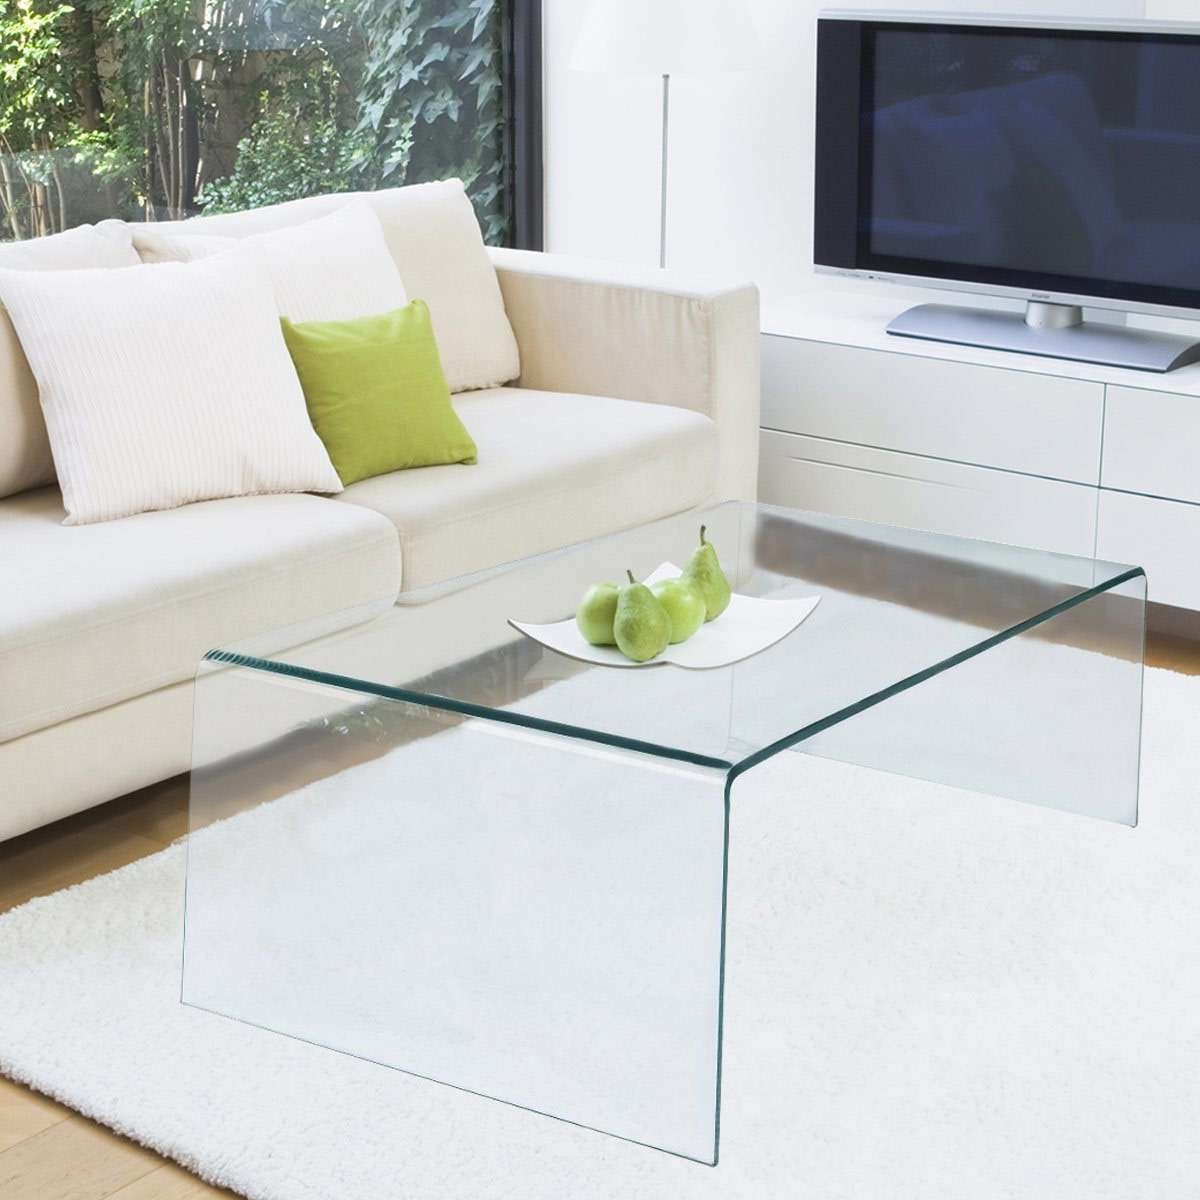 20 Best Ideas of All Glass Coffee Tables